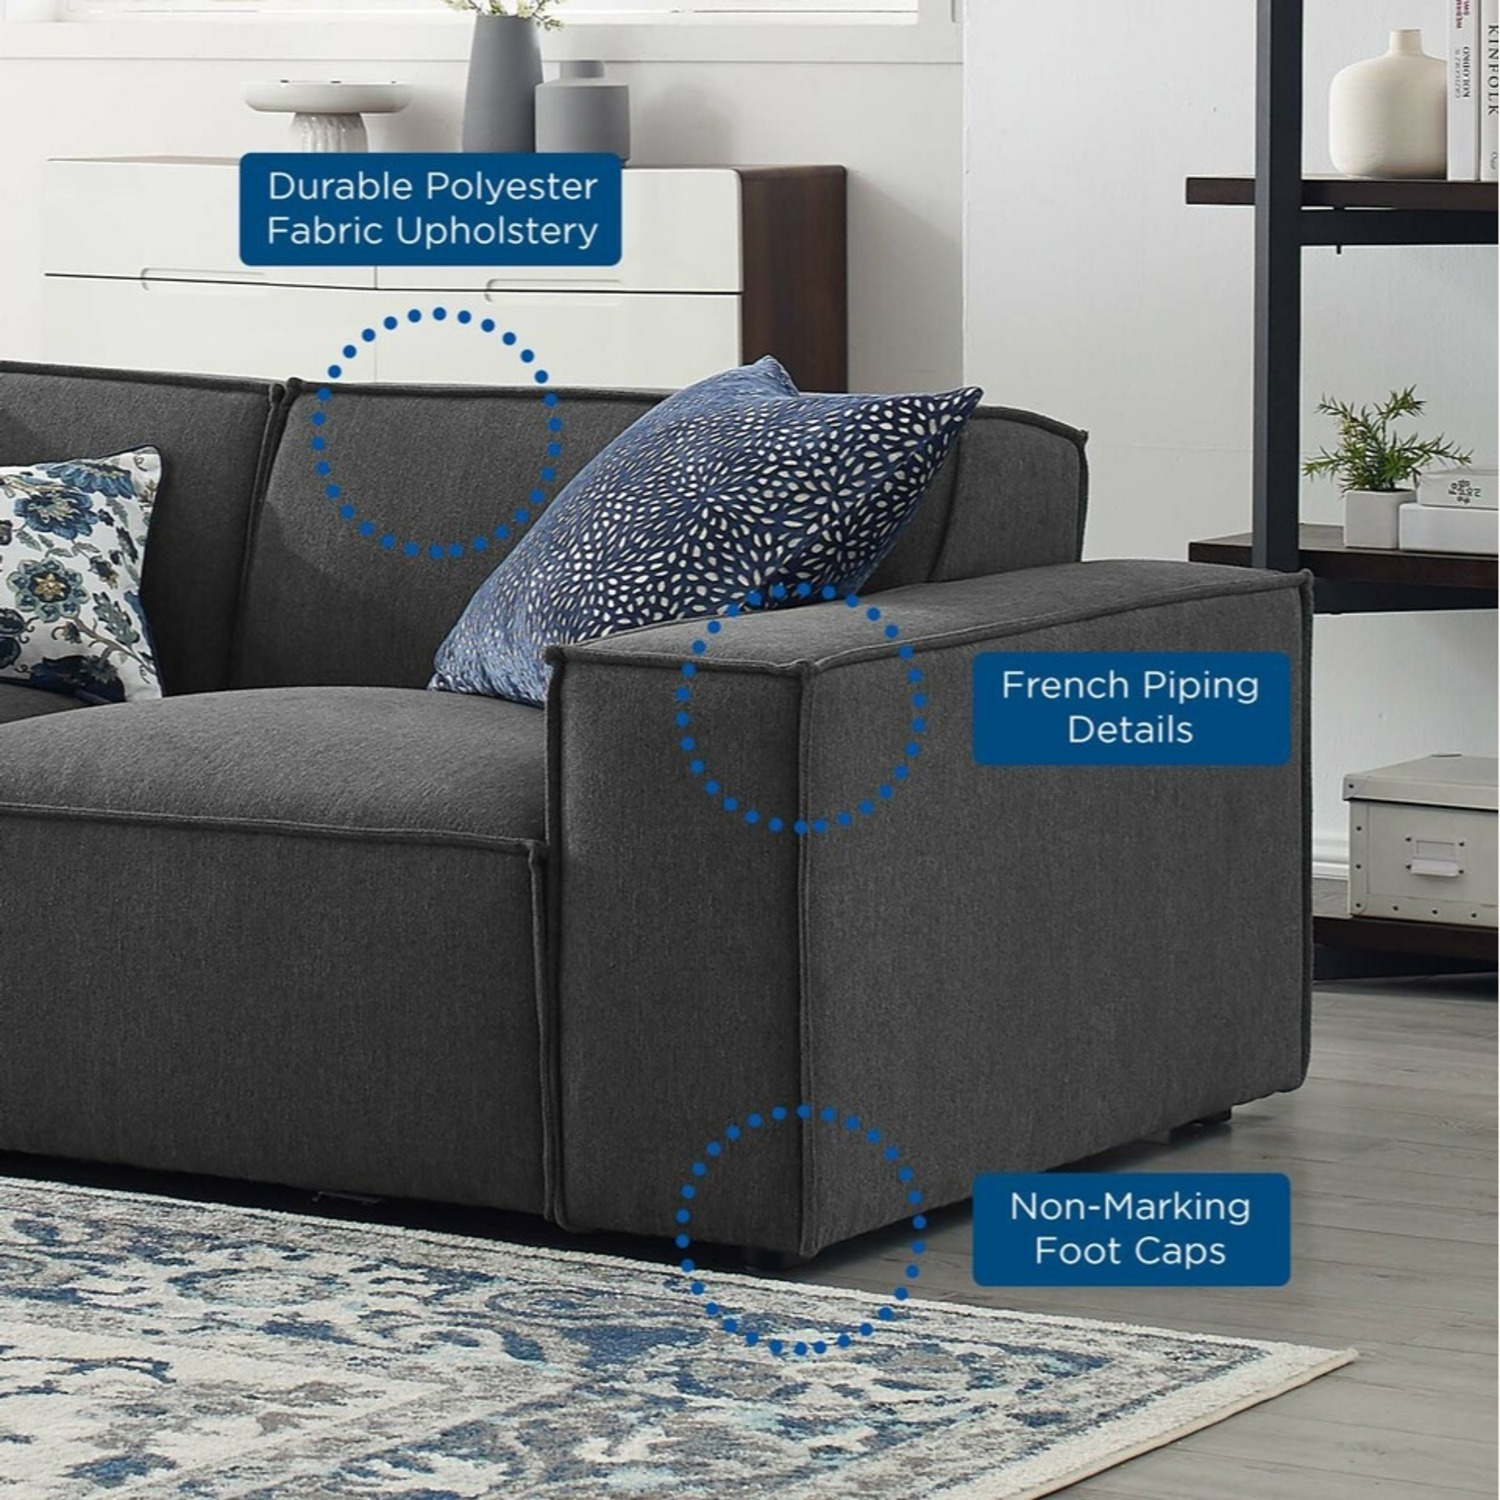 6-Piece Sectional Sofa In Charcoal Fabric - image-11